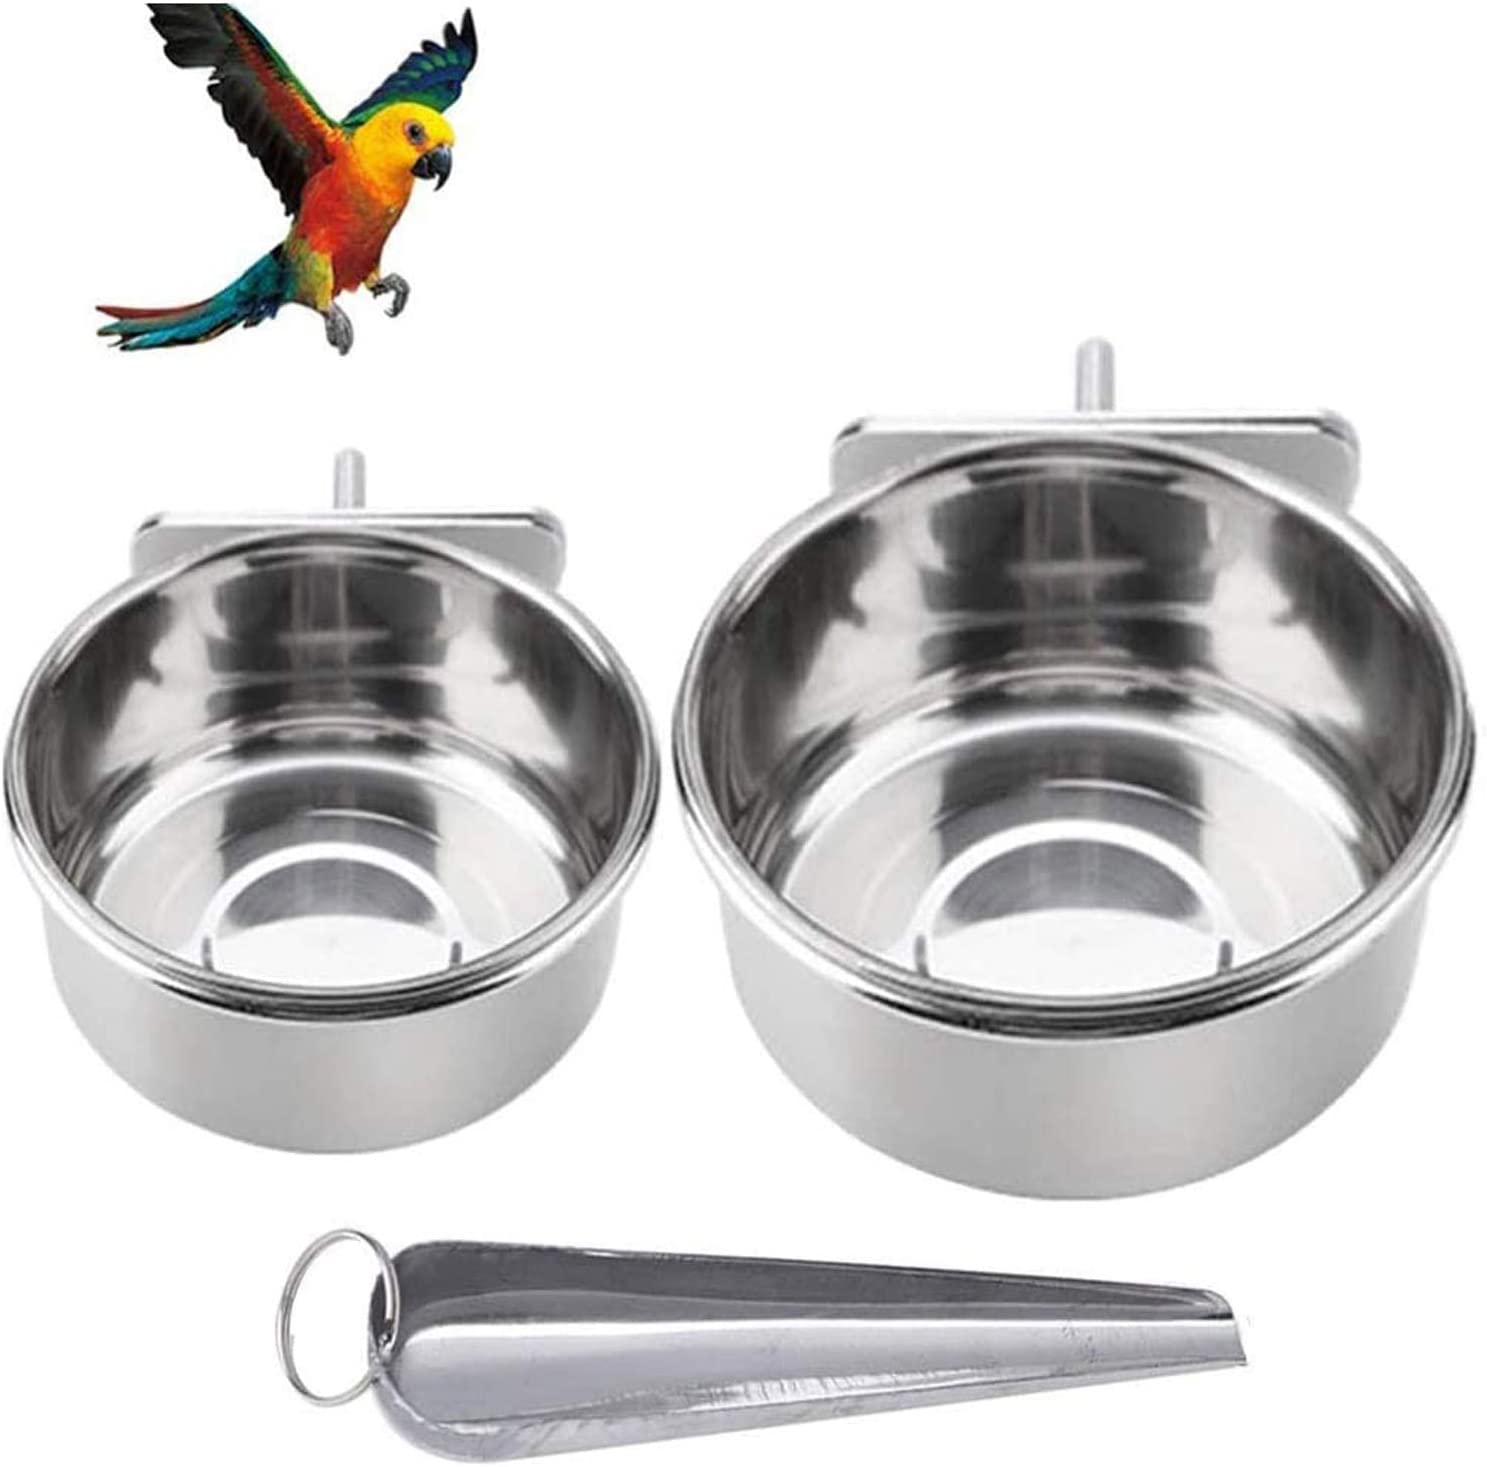 Parrot Feeding Bowls, Bird Cage Cups Holder - Stainless Steel Food and Water Dish, Bird Feeders with Clamp for Parakeet African Greys Conure Cockatiels Lovebird Budgie Chinchilla